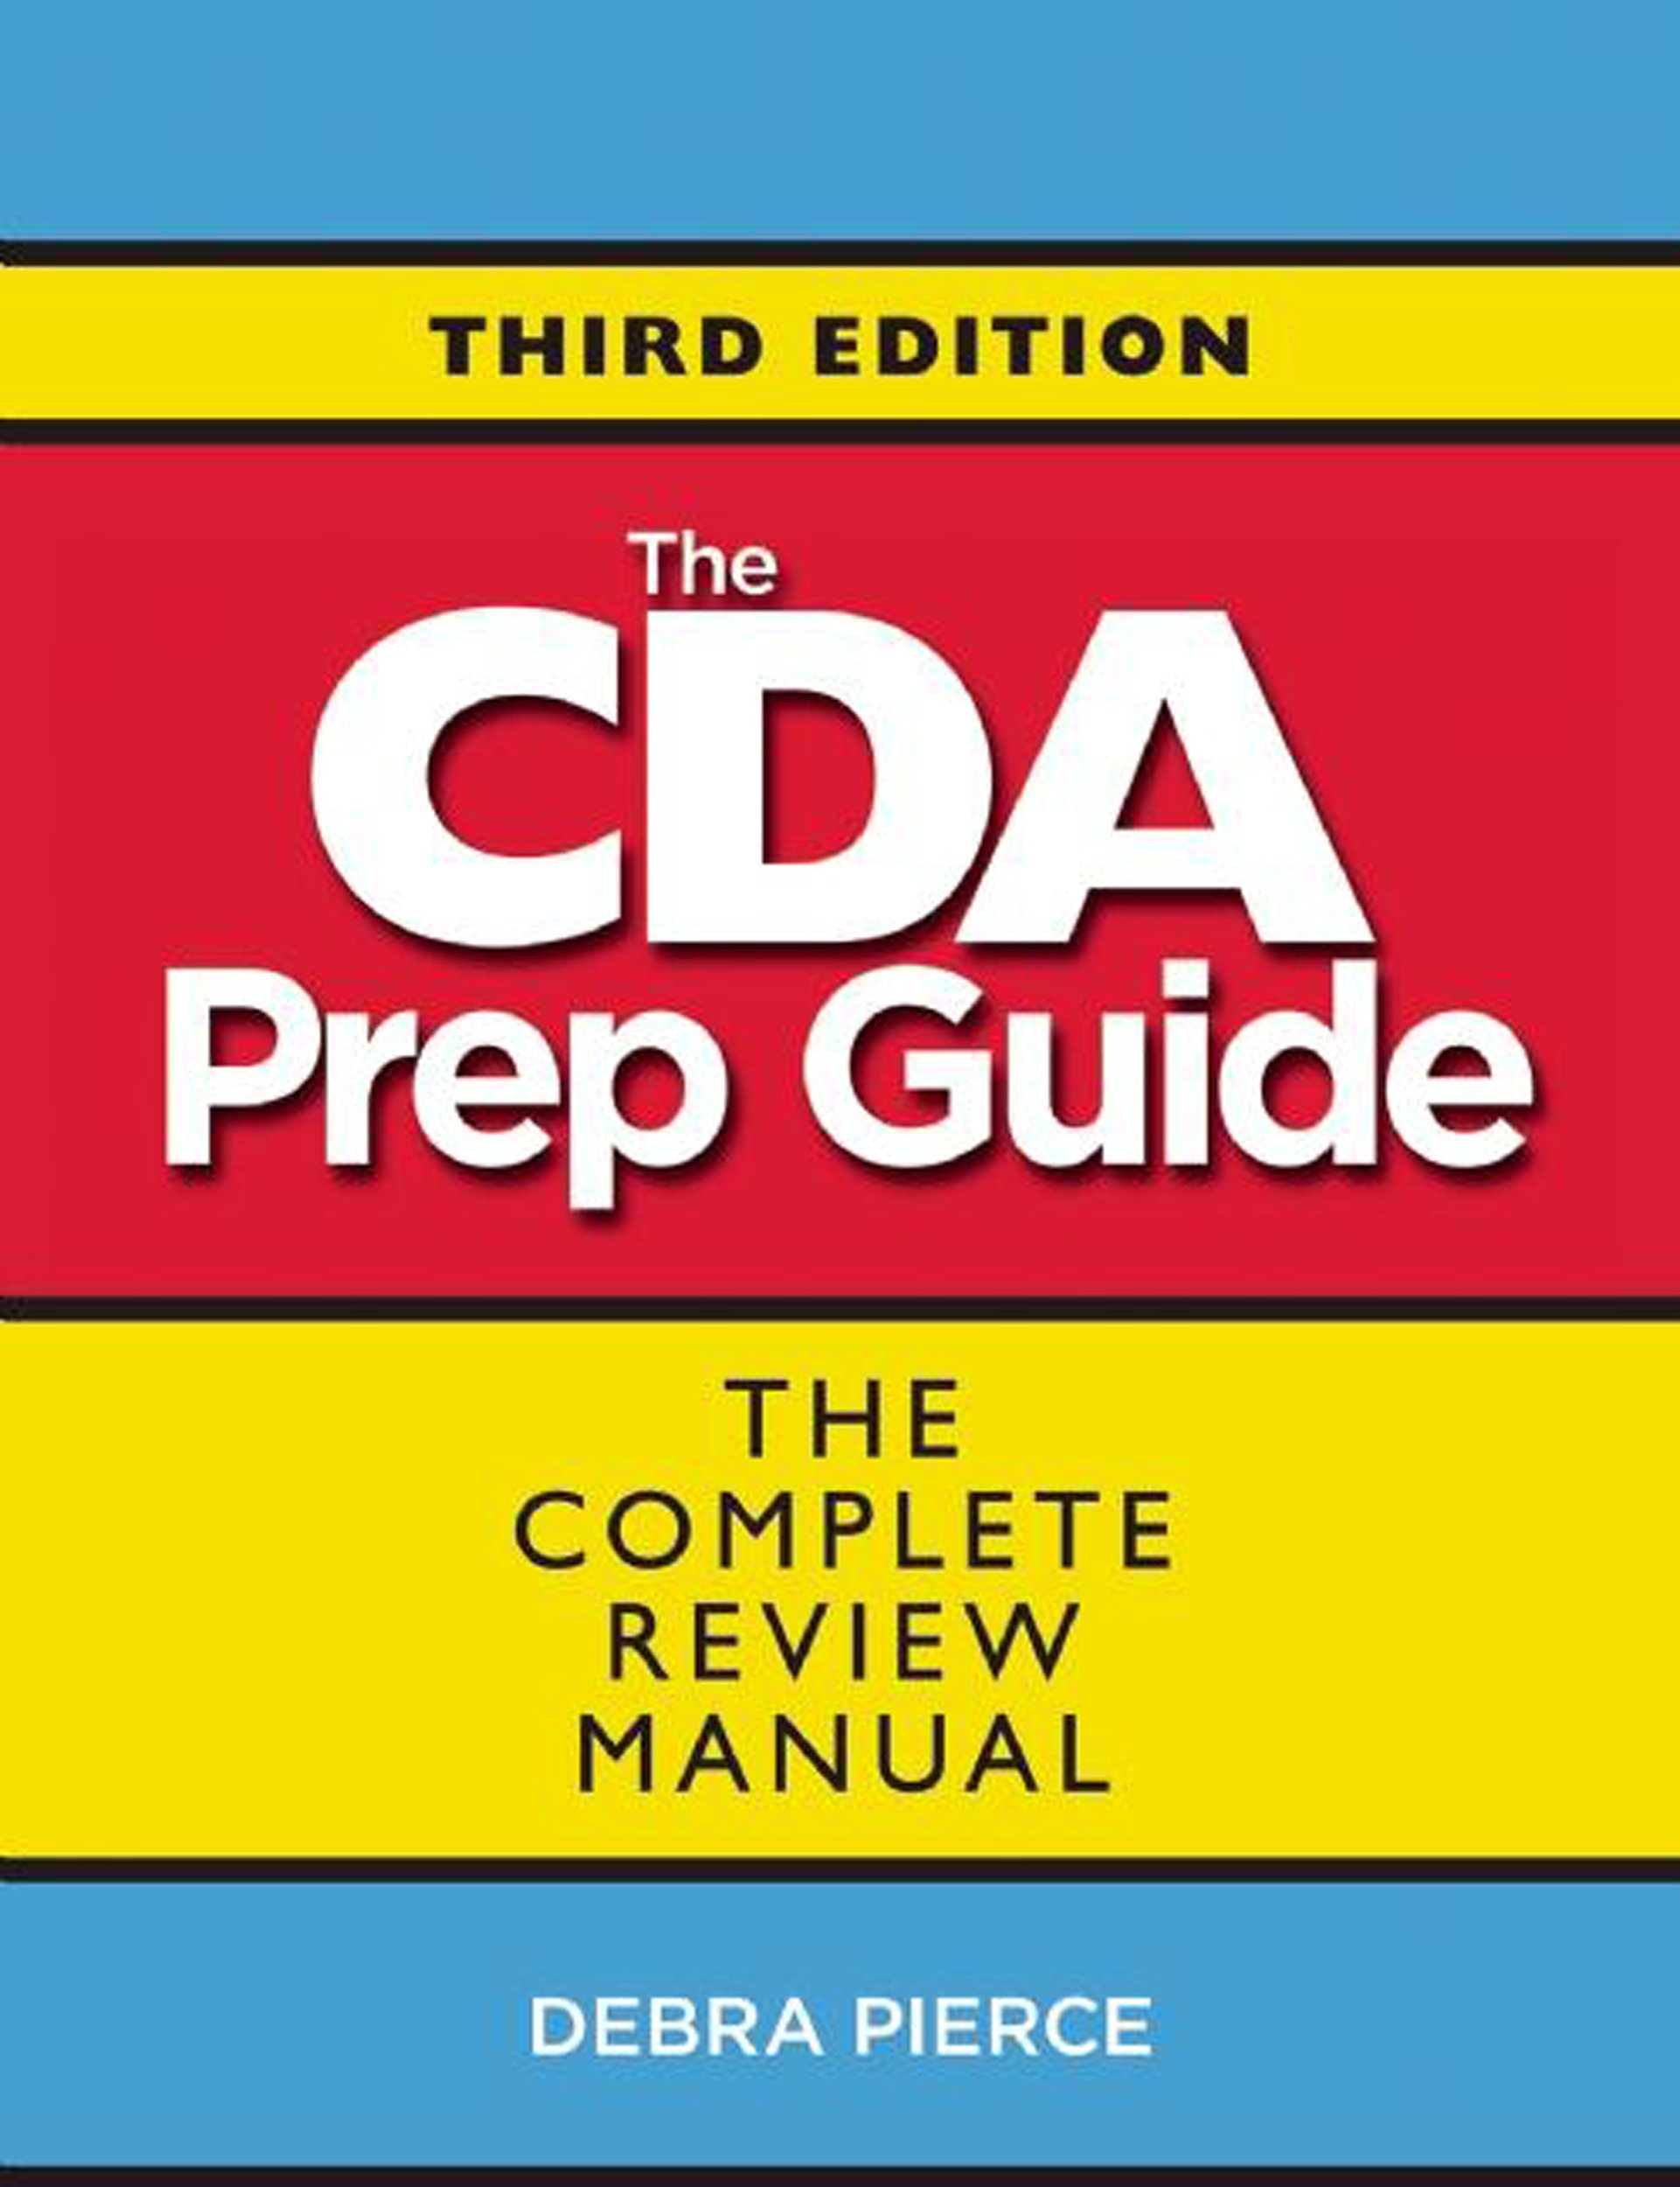 The Cda Prep Guide The Complete Review Manual Debra Pierce